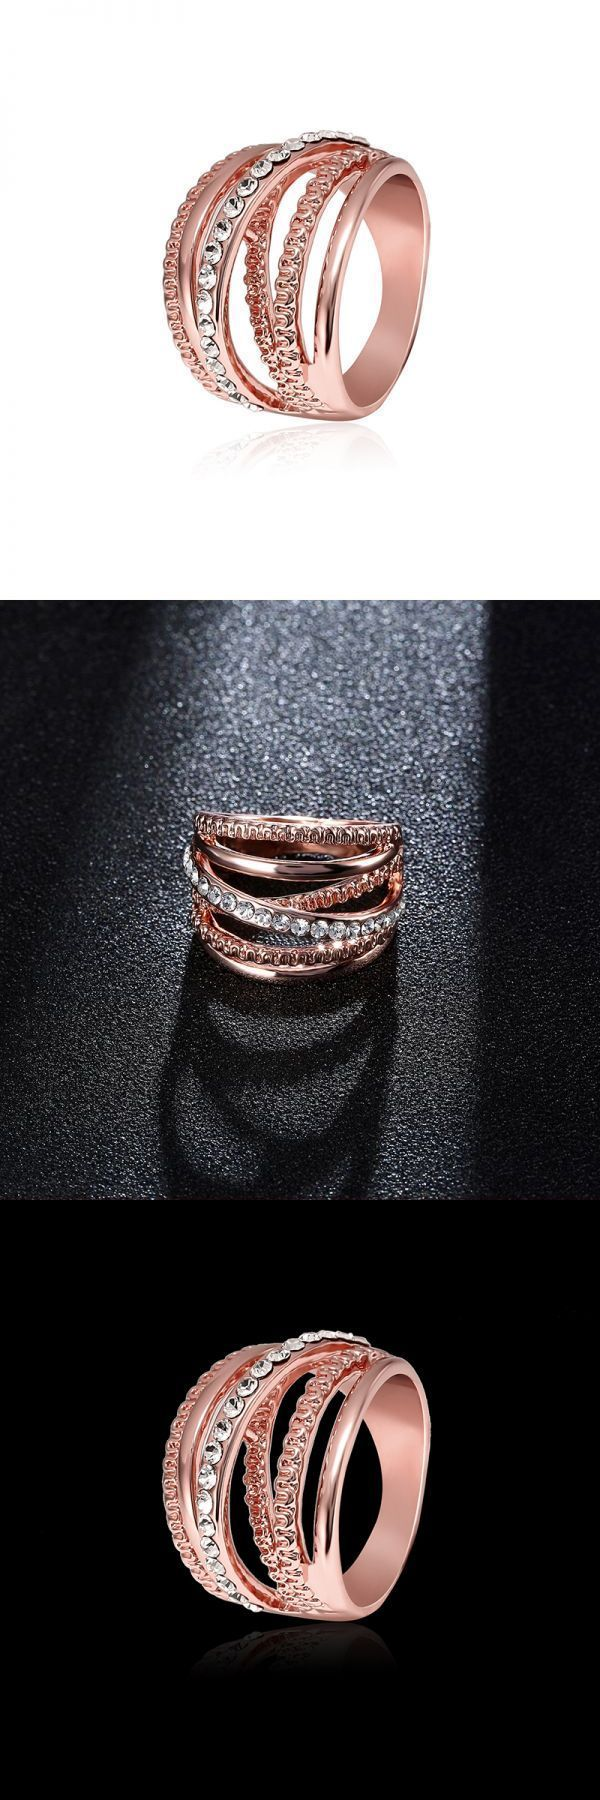 Rings Casual Hollow Out Interlaced Line Stylish Engagement Ring Rose Gold Plated Women Jewelry 8